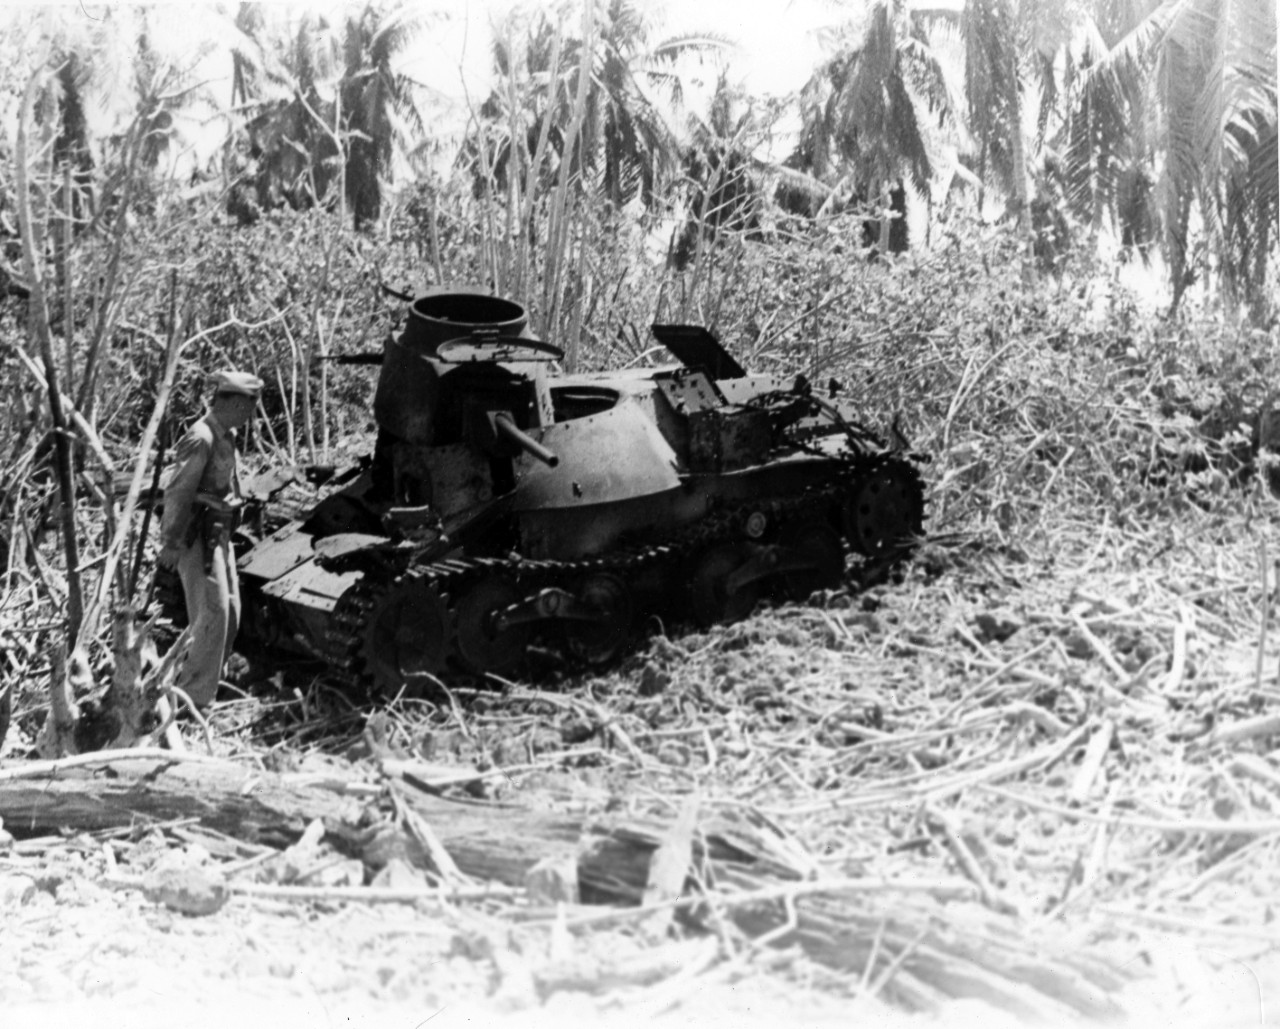 A Japanese tank damaged during Eniwetok Invasion, February 1944. From the VADM Robert C. Giffen Photo Collection.